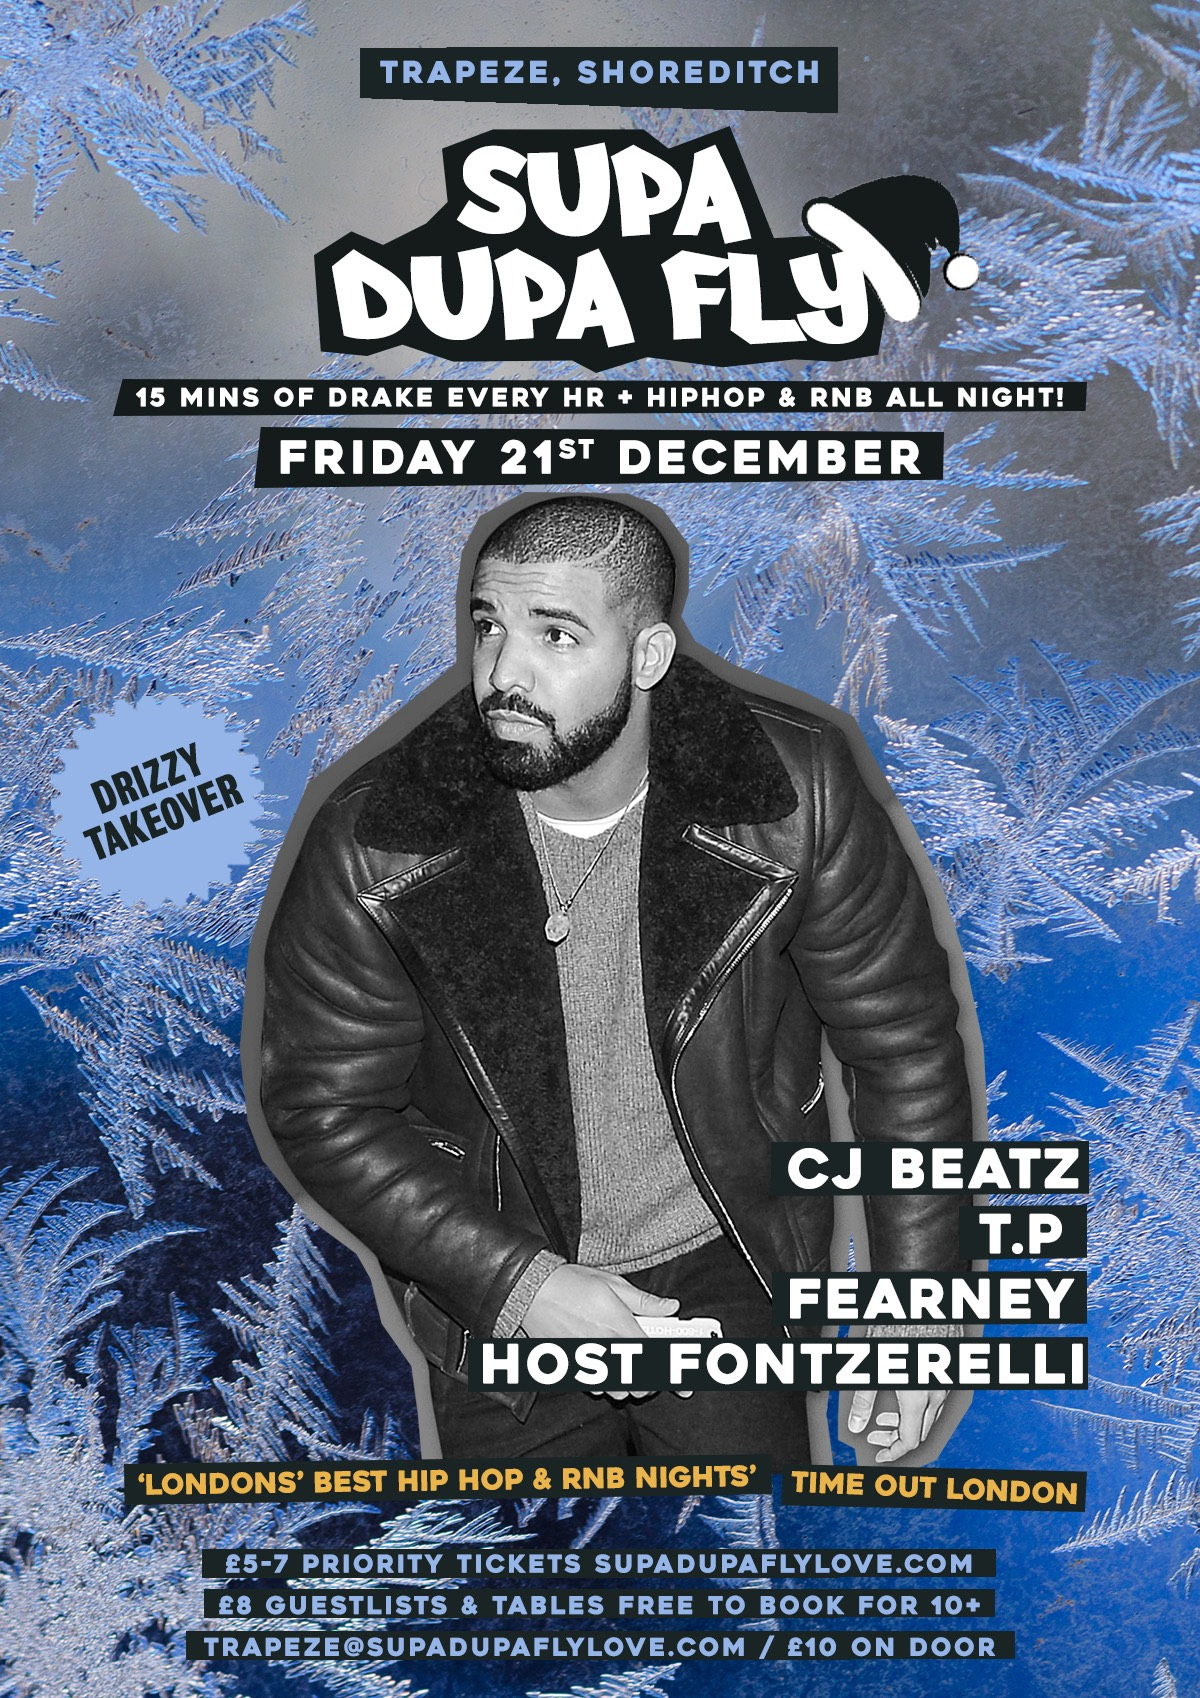 Supa Dupa Fly x Drizzy Takeover x 3rd Fri's